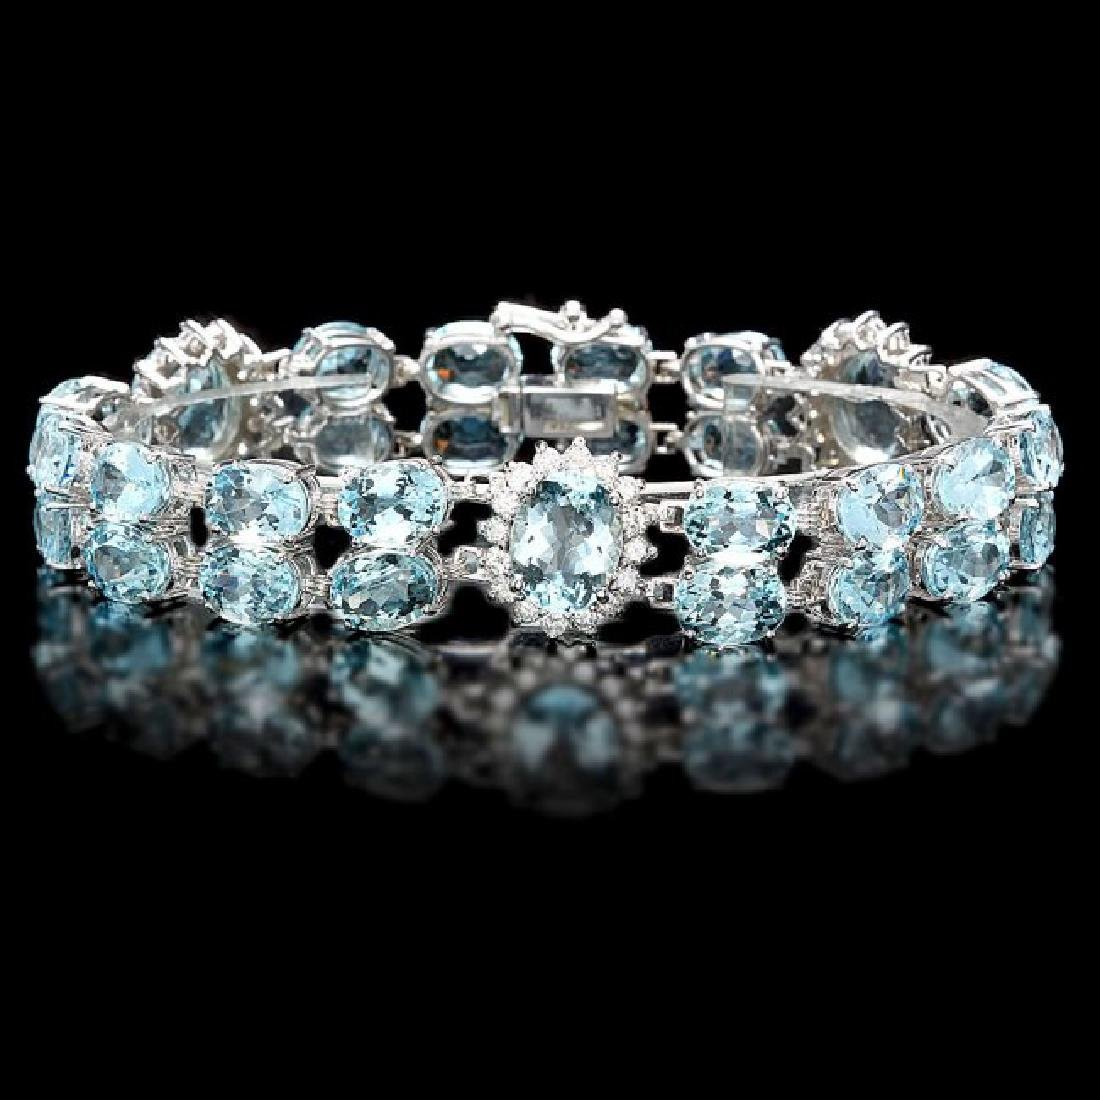 14k Gold 40ct Aquamarine 1.85ct Diamond Bracelet